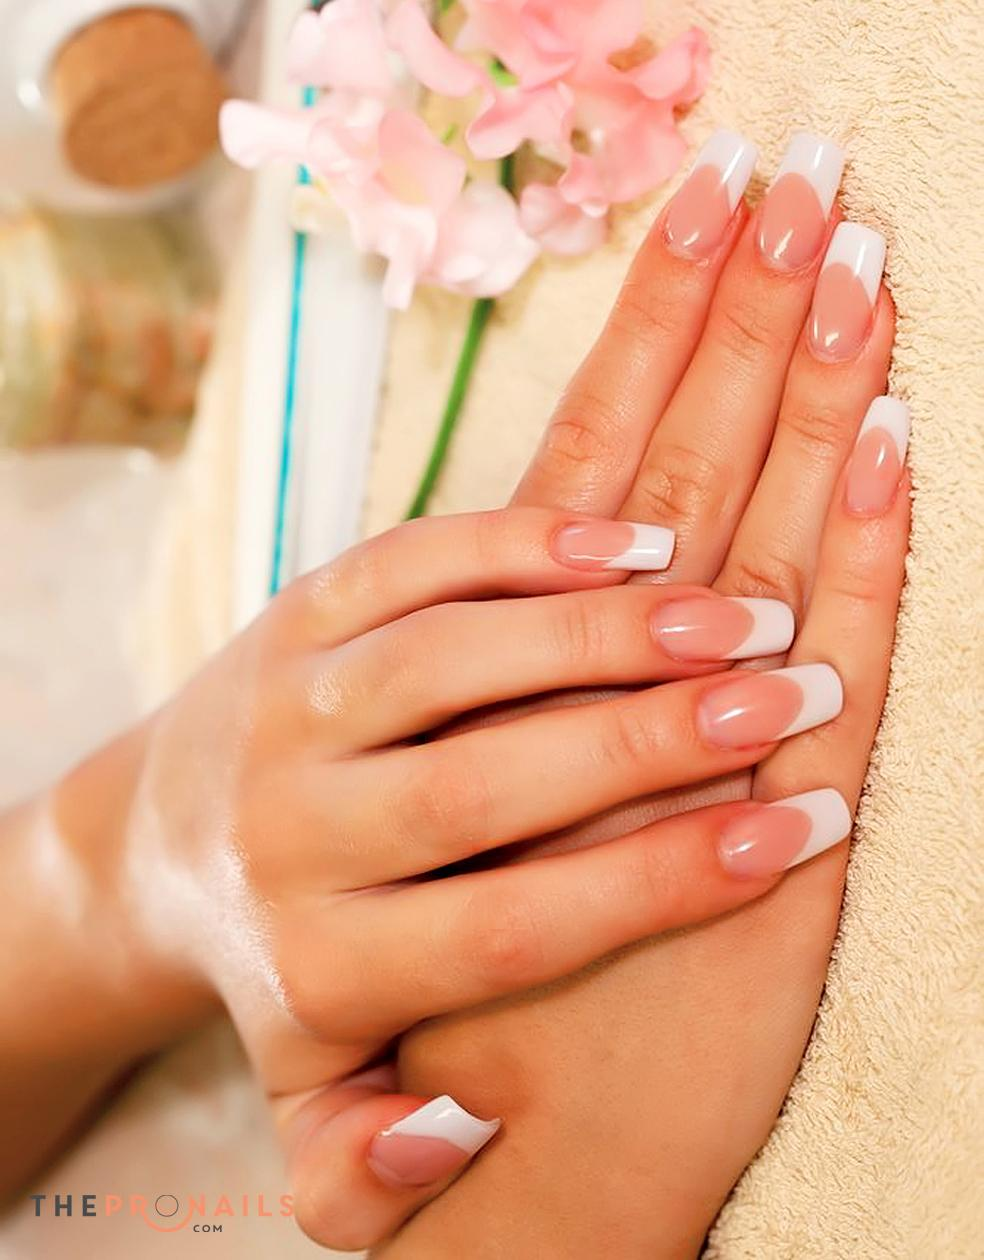 The silk wrap nail procedure is an excellent choice for individuals whose nails are naturally weak, cracked, brittle or otherwise damaged.